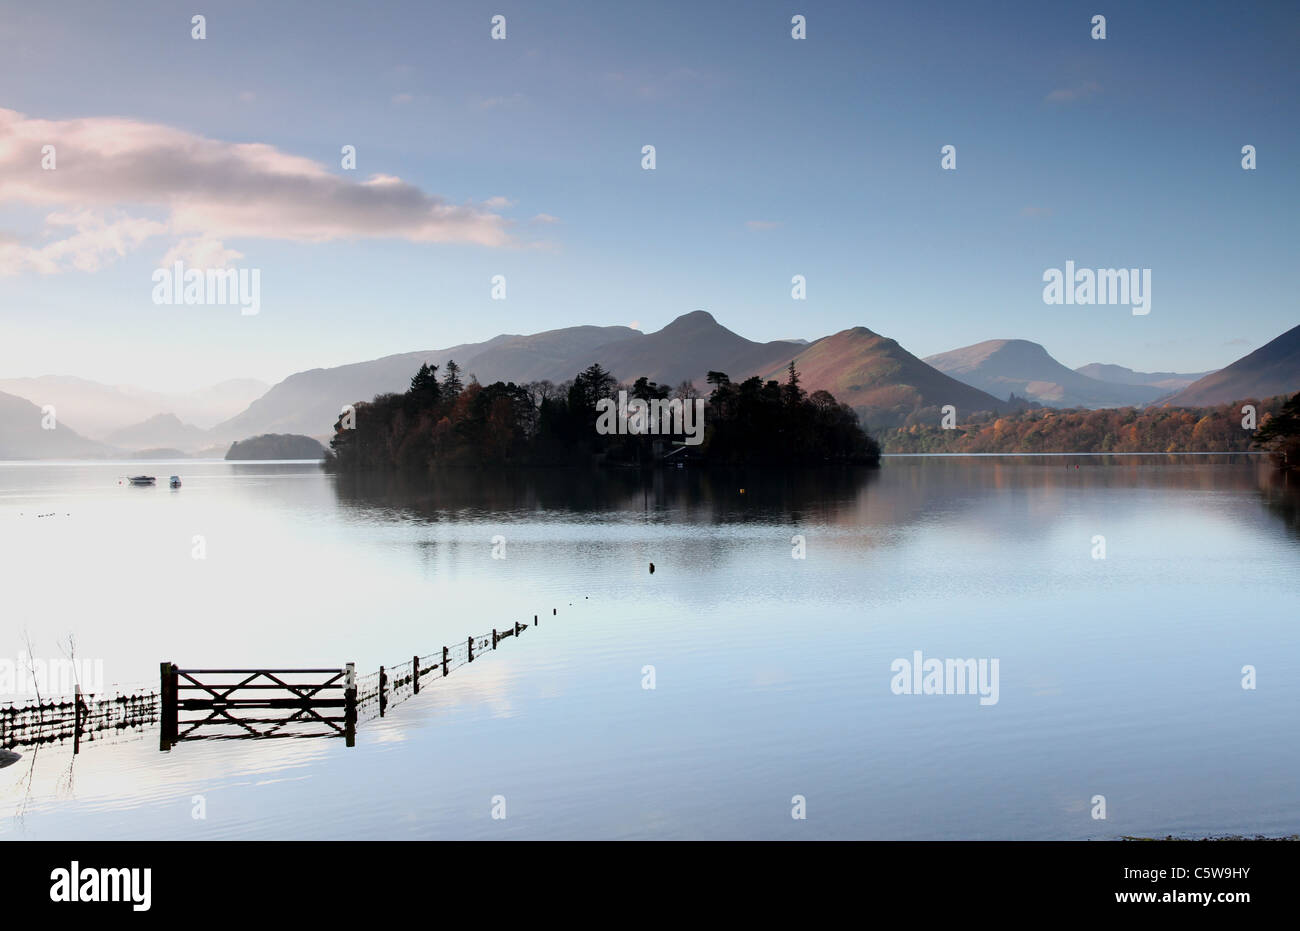 View across Derwentwater towards Catbells, frosty November morning - Stock Image